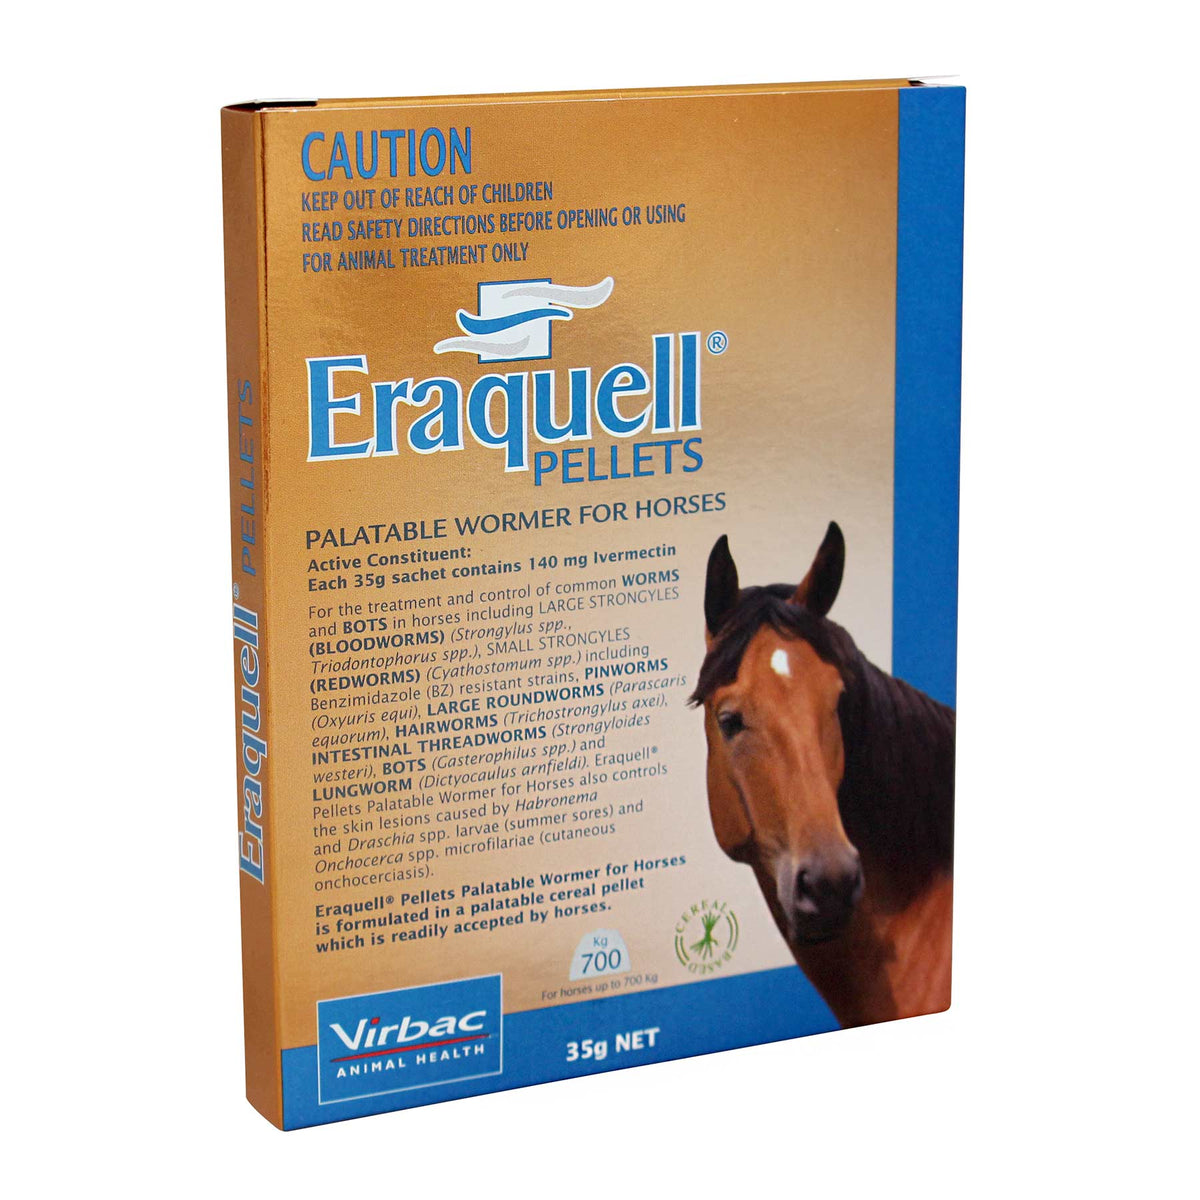 Eraquell Pellets Palatable Wormer for Horses 35g